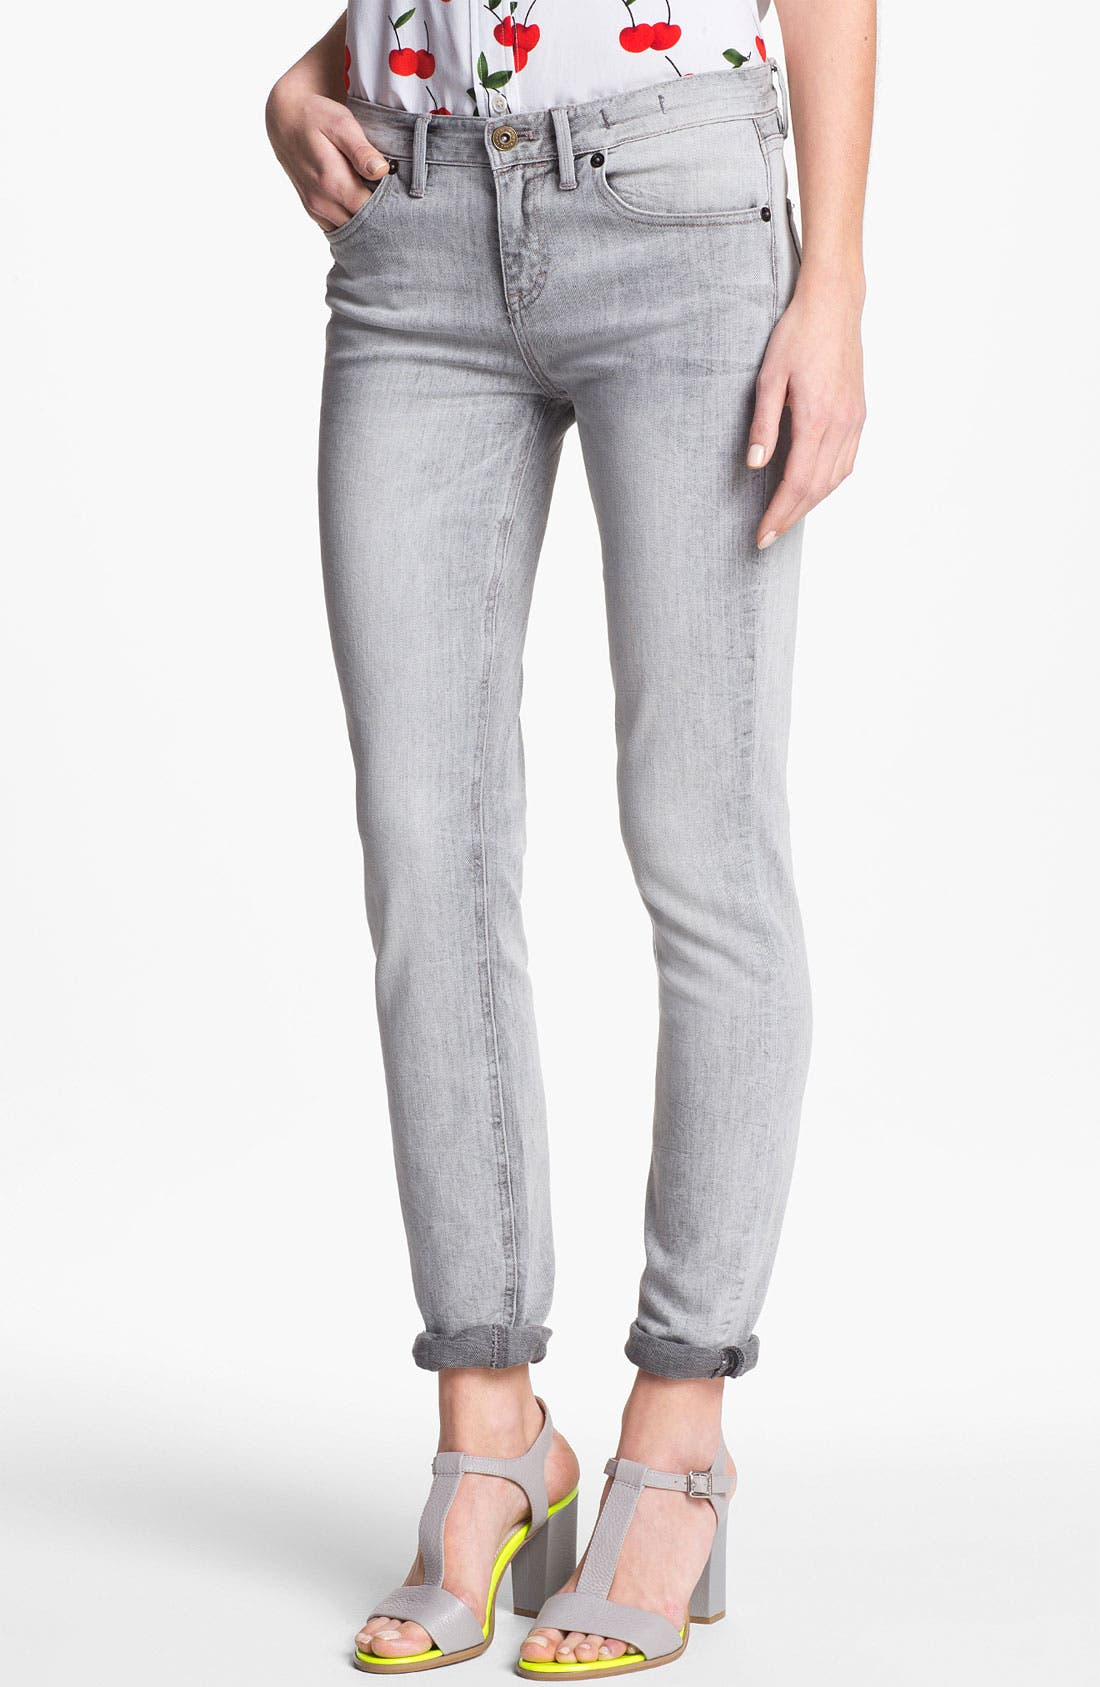 Alternate Image 1 Selected - Two by Vince Camuto 'Shorty' Jeans (Sandy Grey)